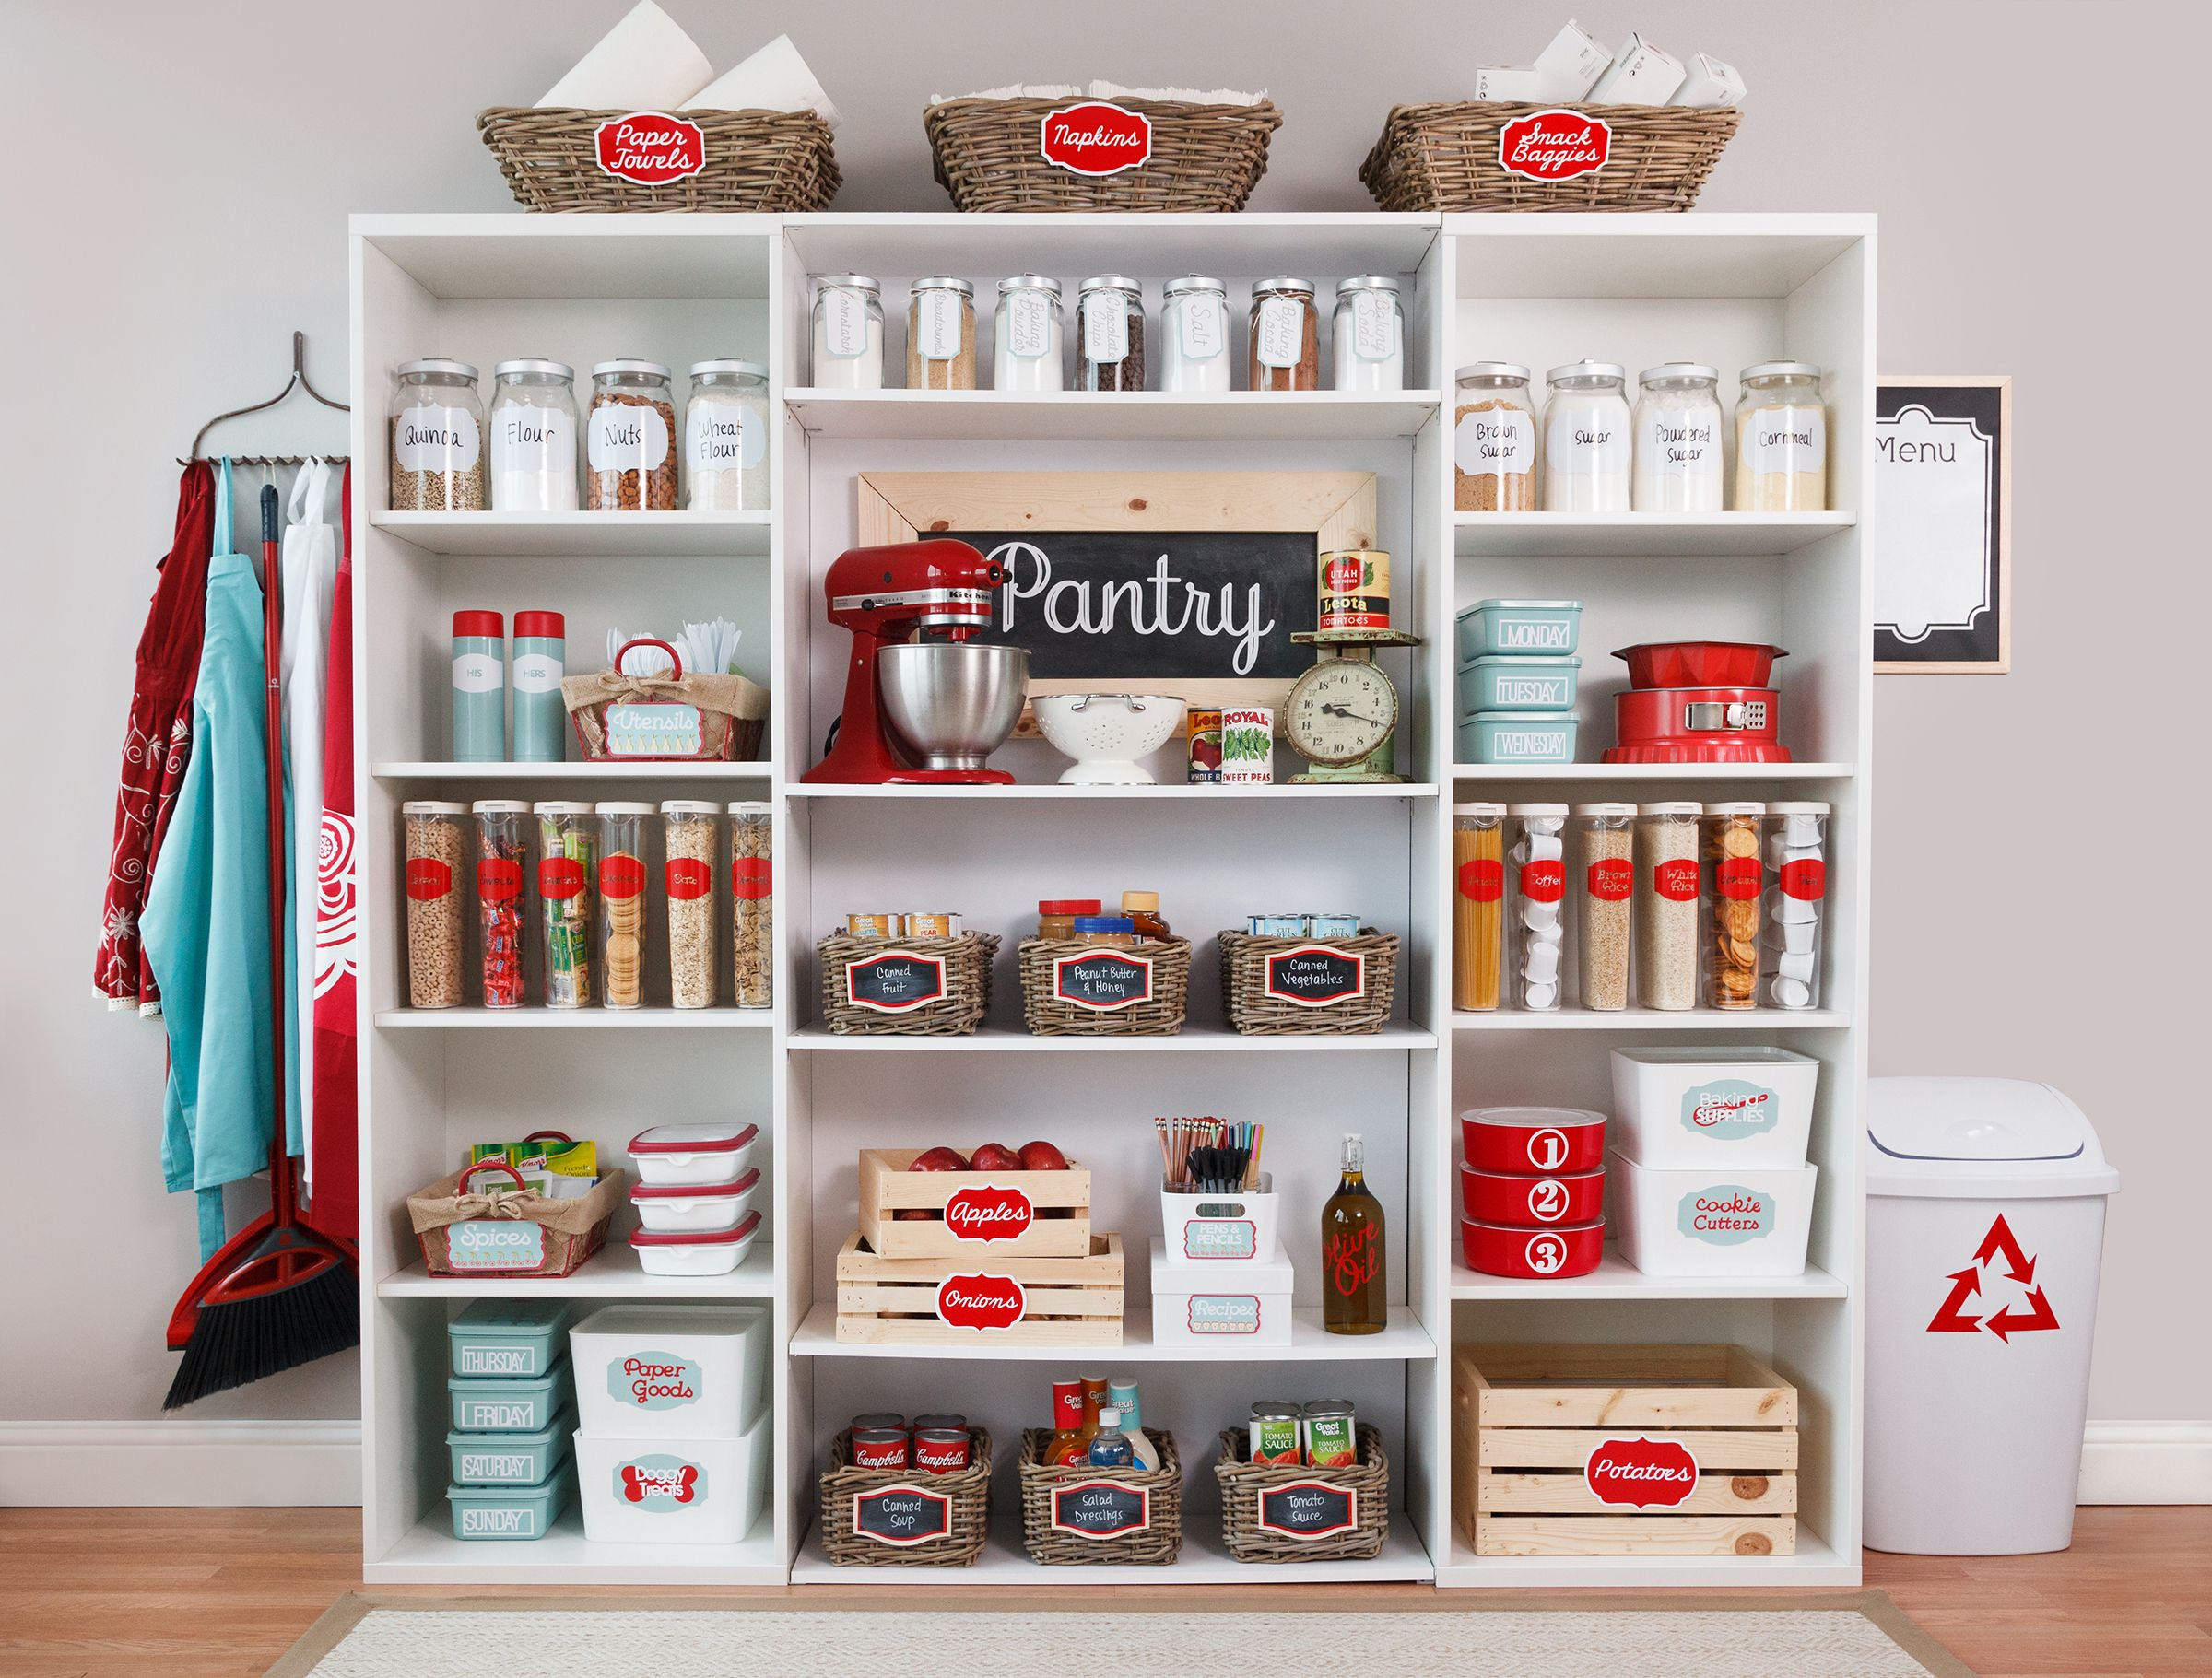 Organize your pantry from top to bottom with the new Home Organization Cricut cartridge and the